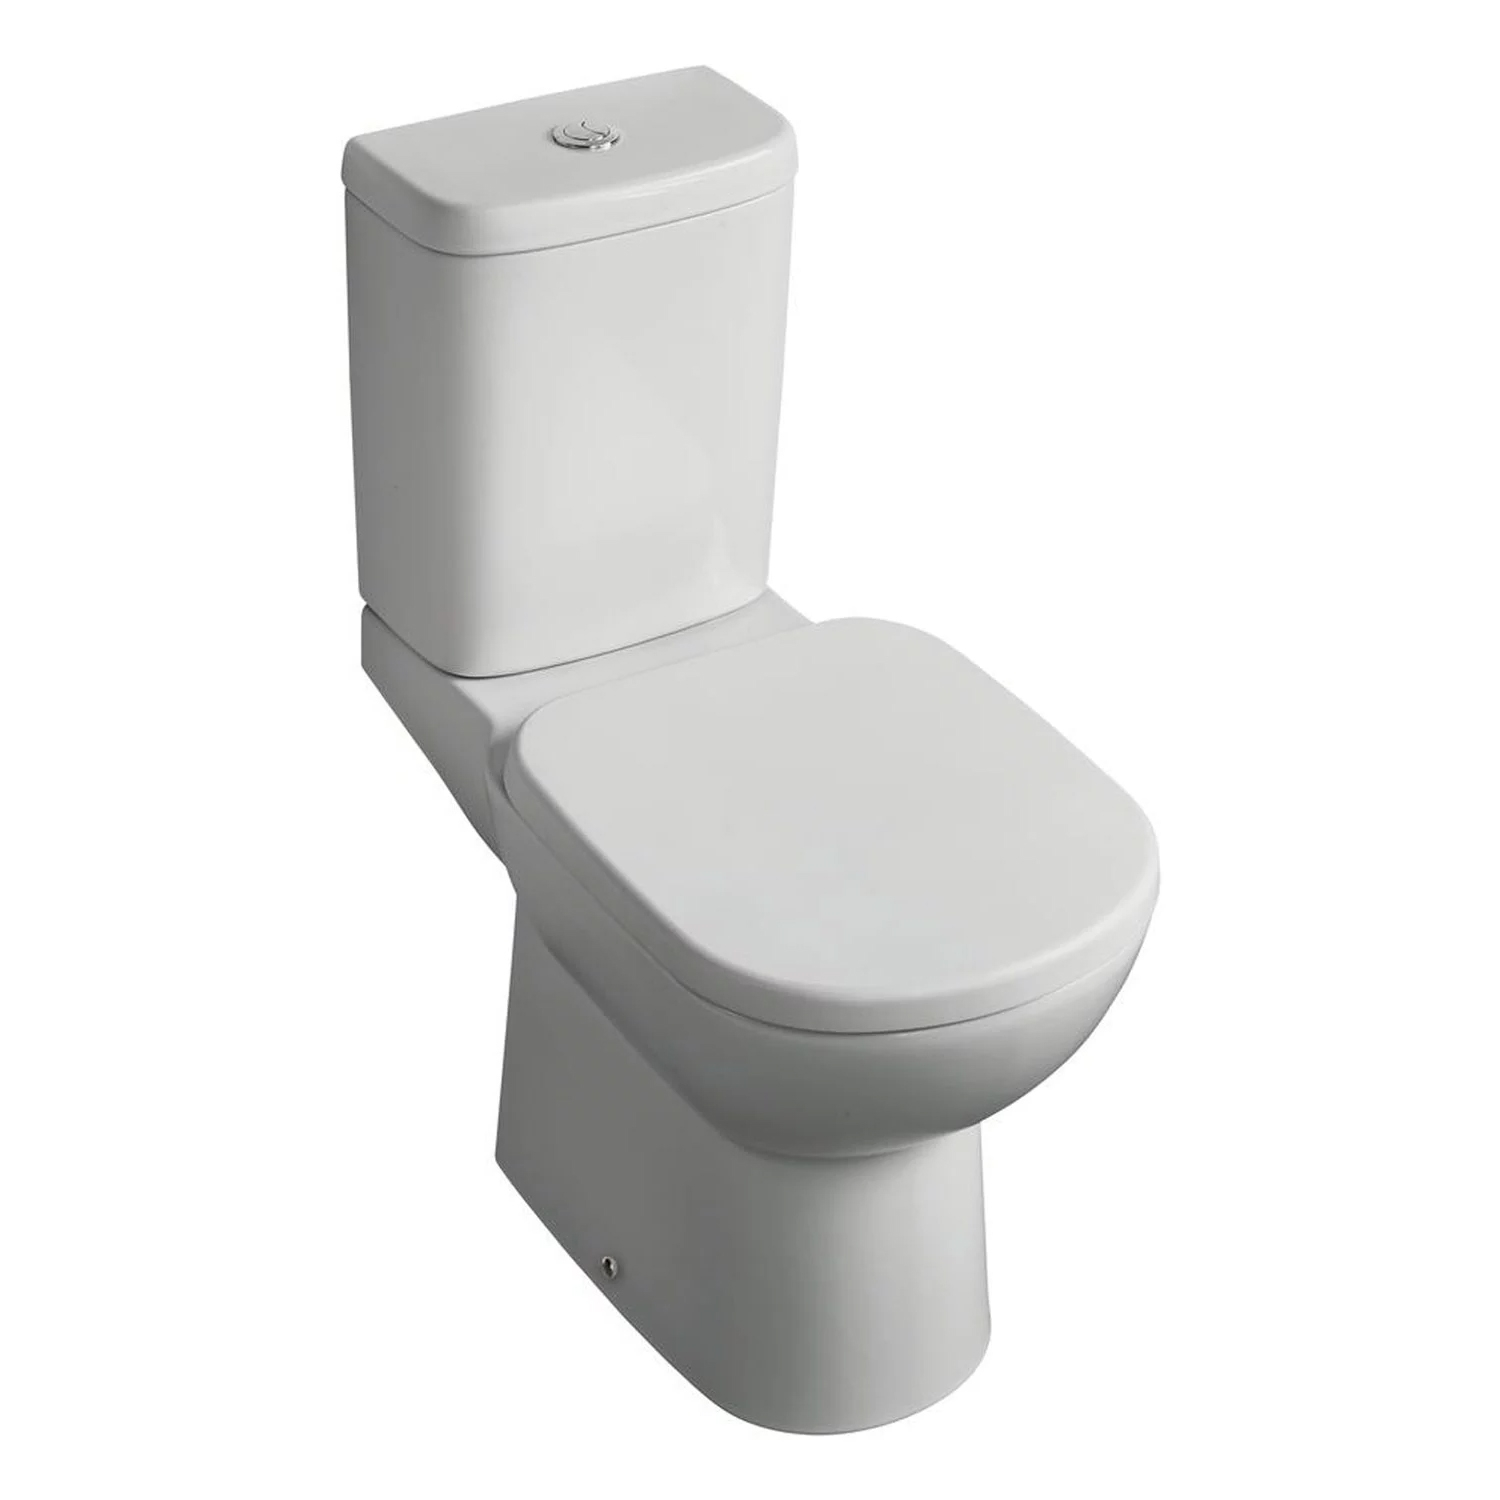 Ideal Standard Tempo Value Suite Horizontal Outlet Close Coupled Toilet 2 Tap Hole Basin - White-1